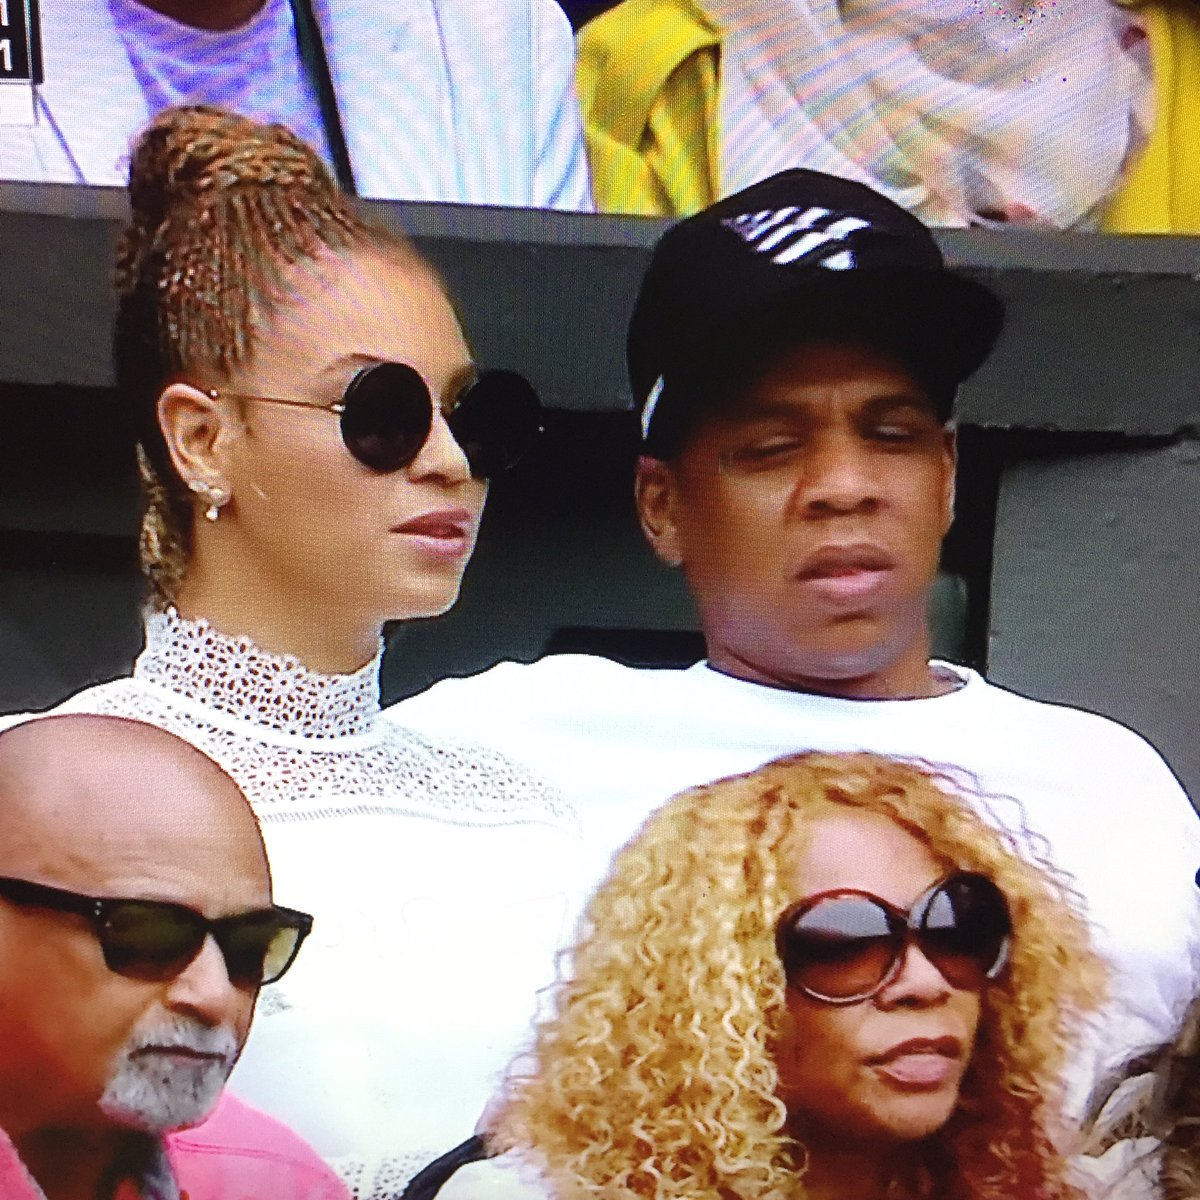 Usually the Queen is in the royal box. Today, she's in Serena's box. #Wimbledon #Beyonce https://t.co/fLb4RdhTiD